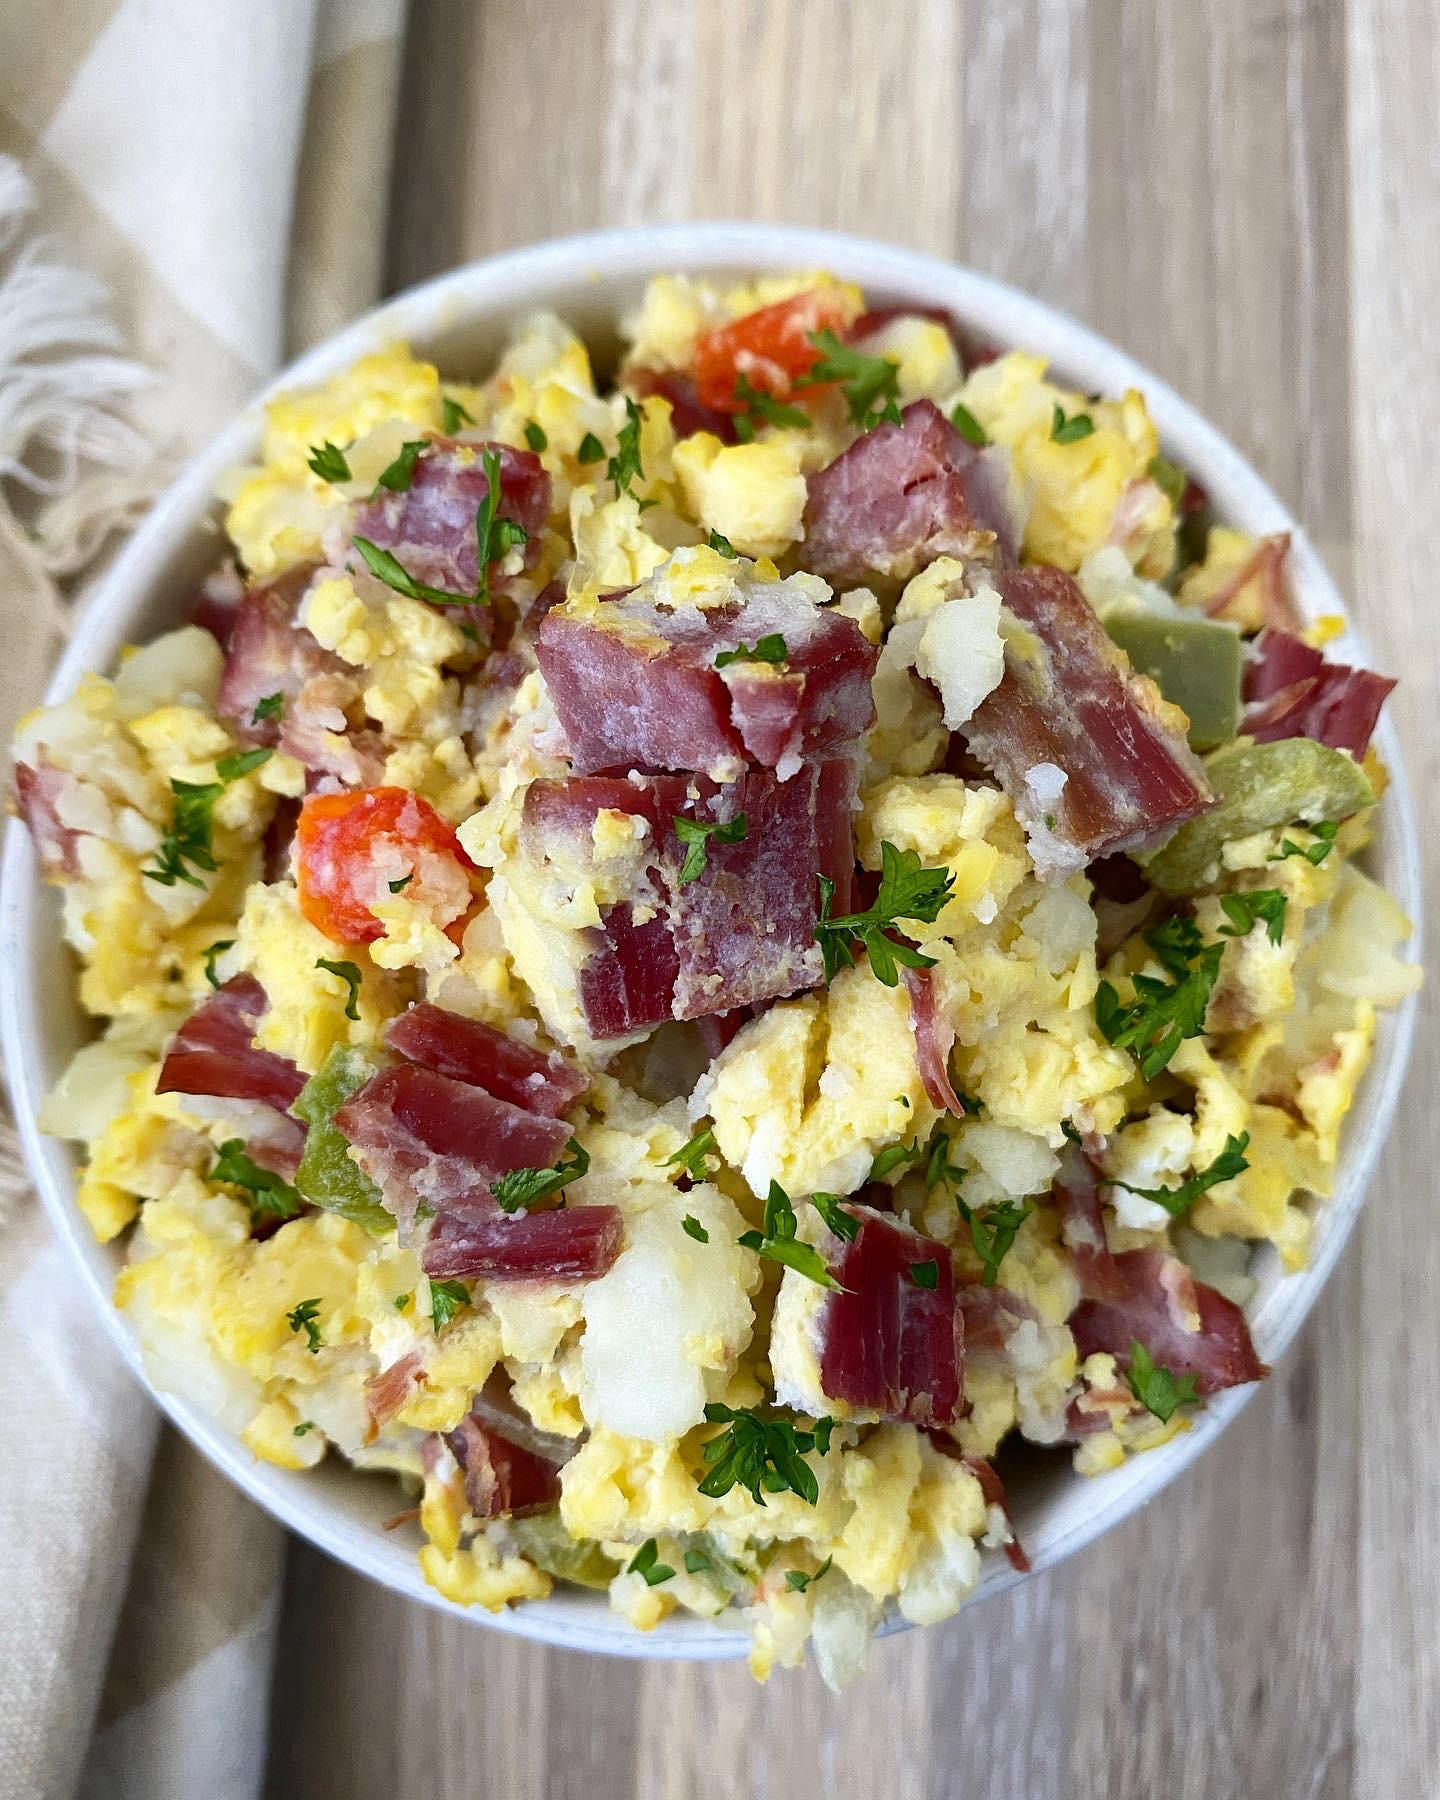 Slow Cooker Instant Pot Corned Beef Hash Breakfast Casserole (Low-Carb, Paleo, Whole30)